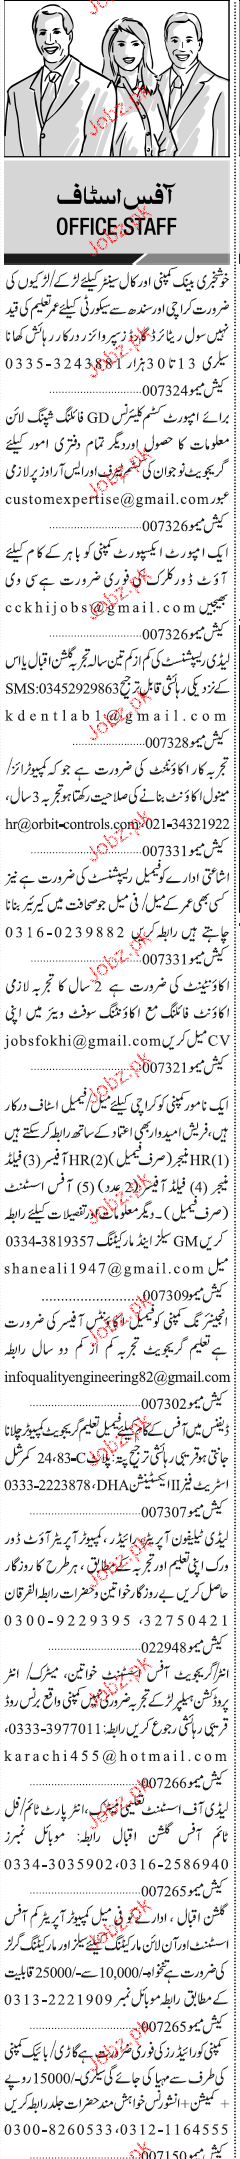 Civil Security Guards, Call Center Staff Job Opportunity